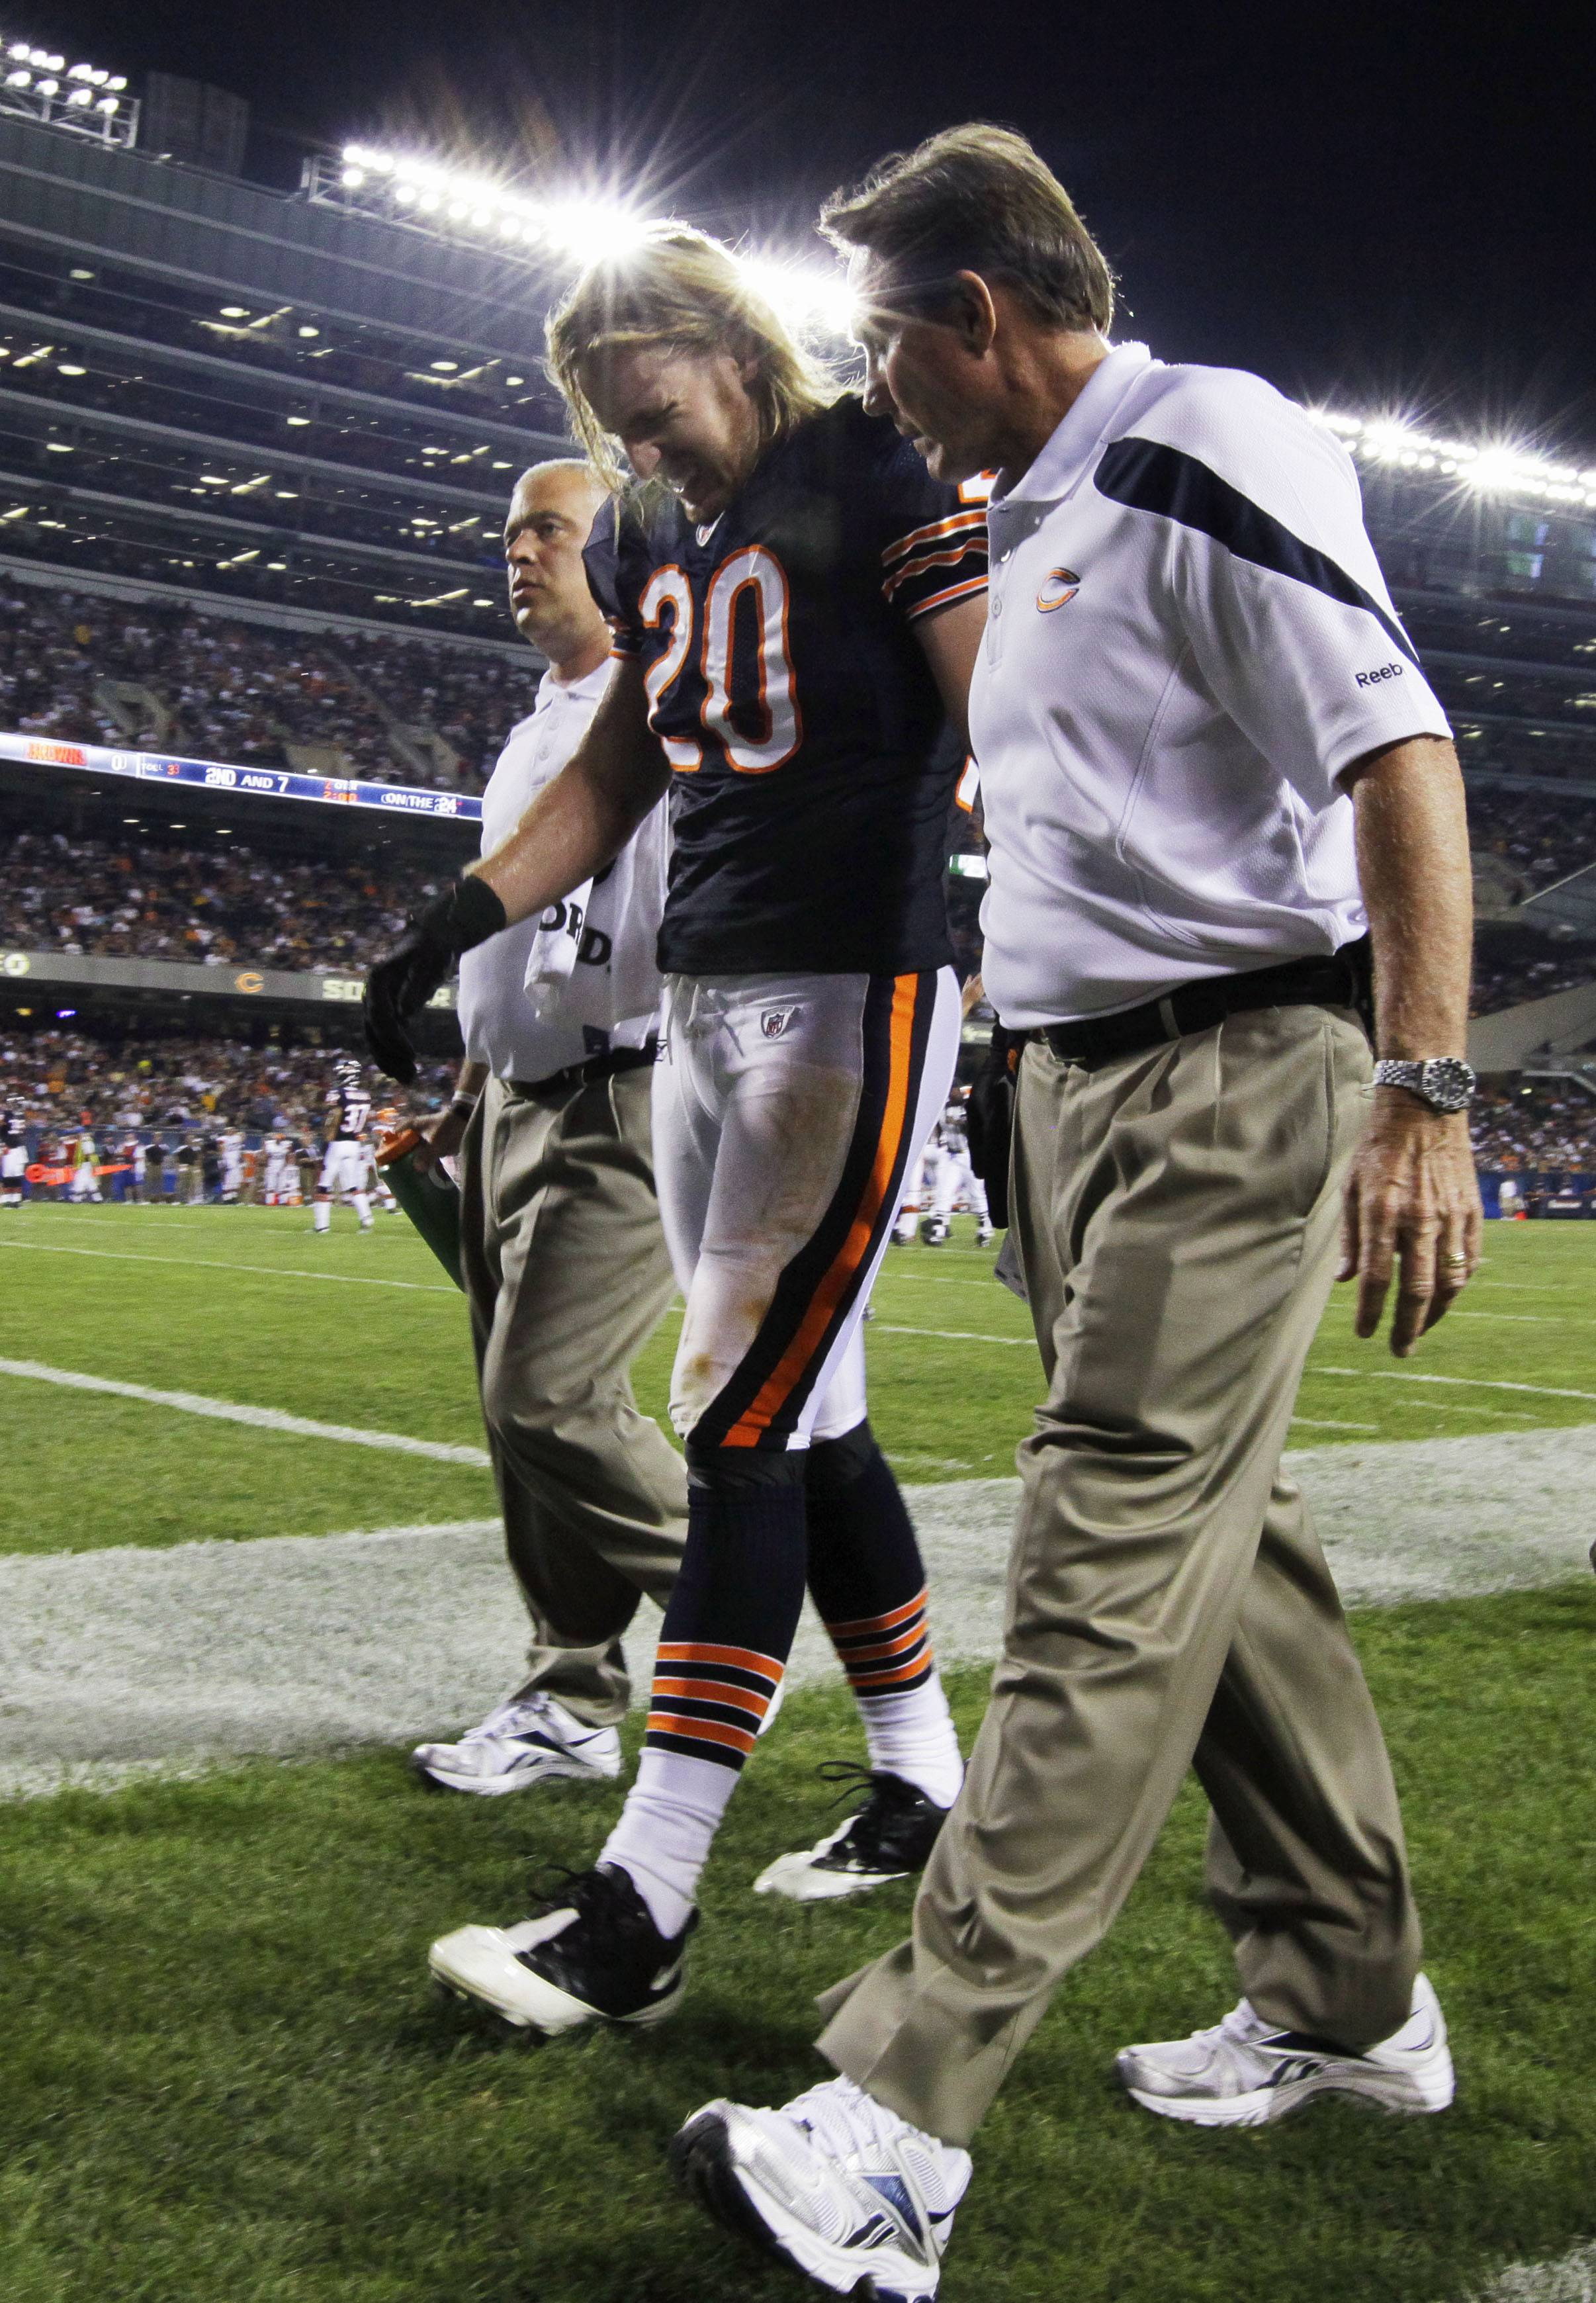 Craig Steltz is helped from the field after getting injured in the first half Thursday night against the Cleveland Browns.